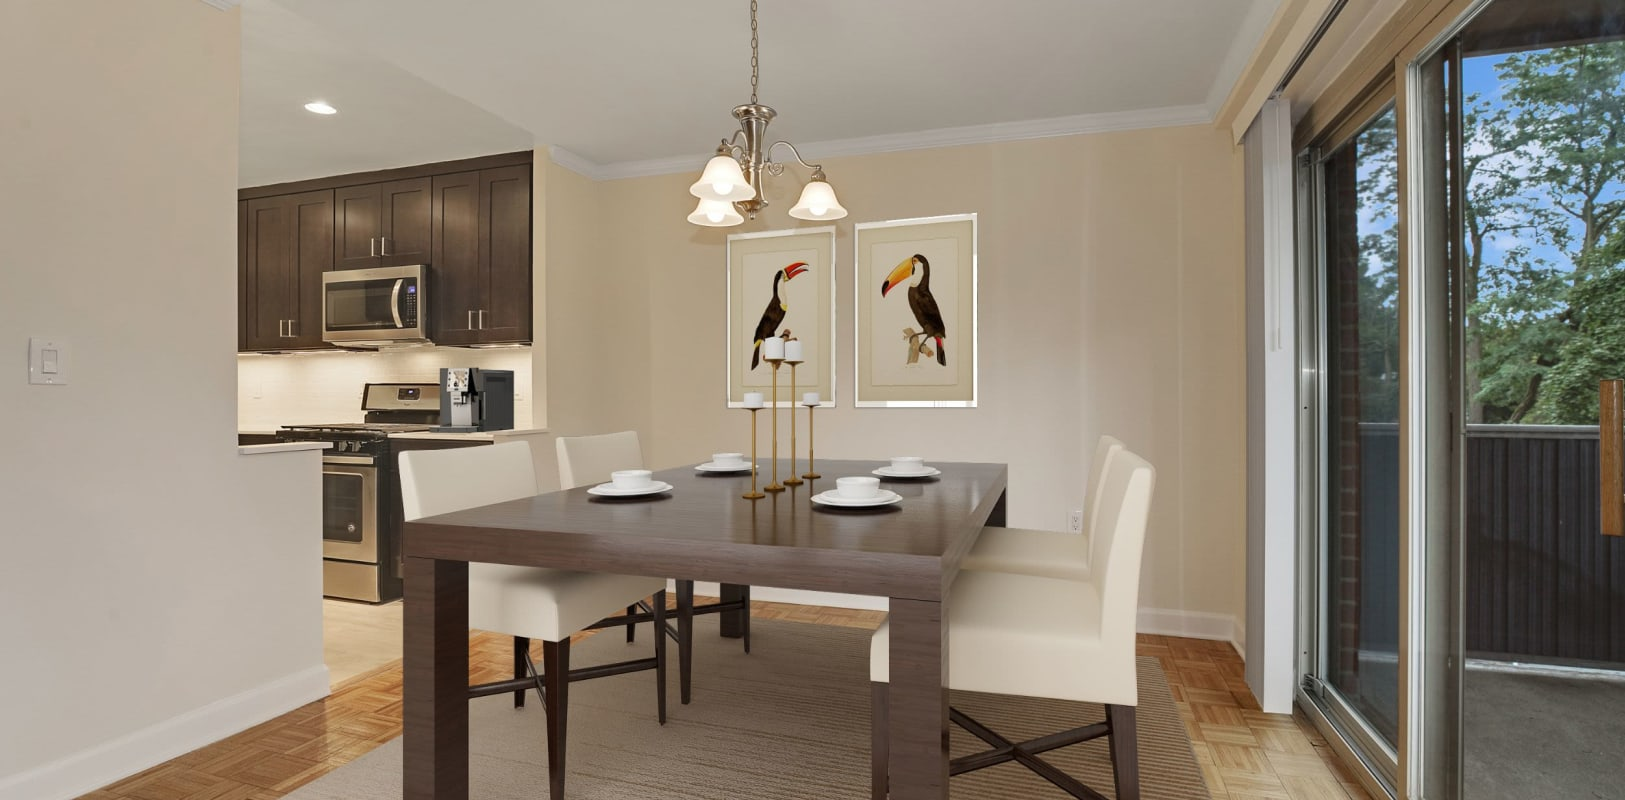 Dining area with a view at Hamilton Court in Morristown, New Jersey